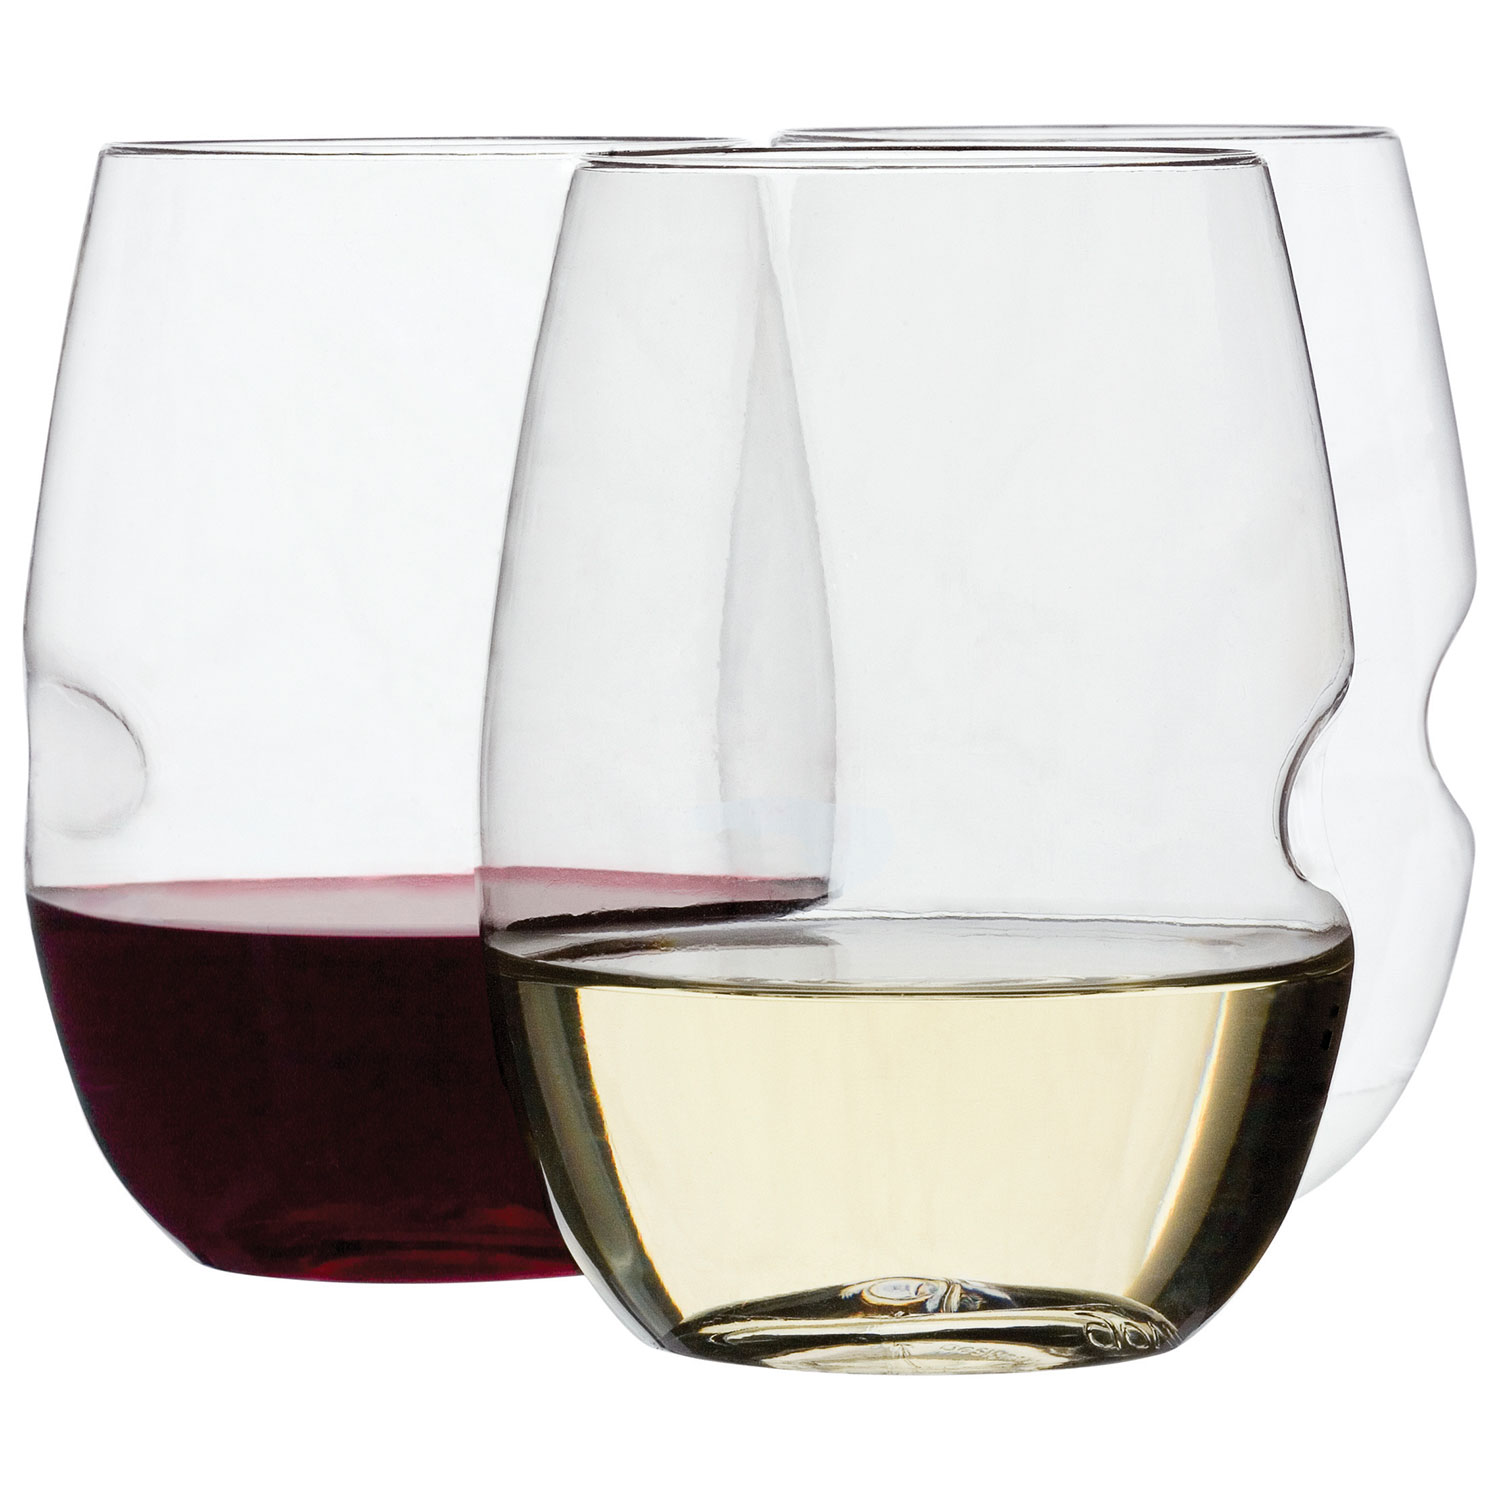 Verre à vin incassable de 473 ml Classic de Govino - Ensemble de 4